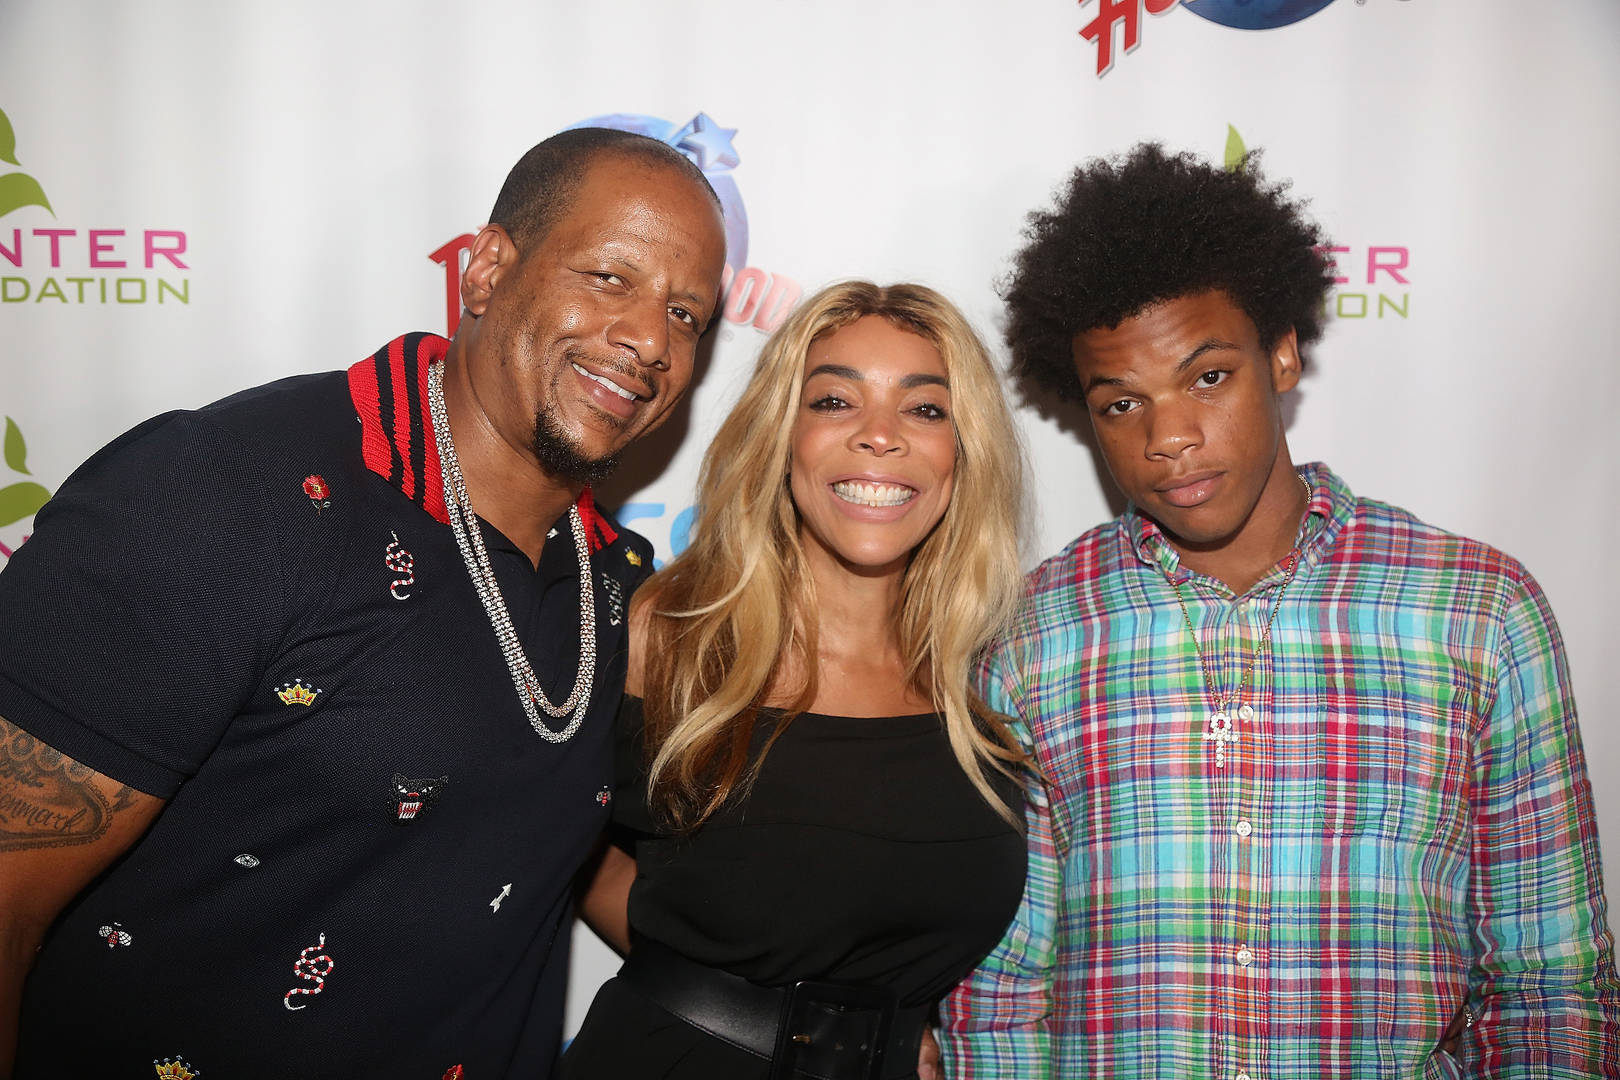 Wendy Williams' Son & Husband Square Up In Parking Lot, Police Called